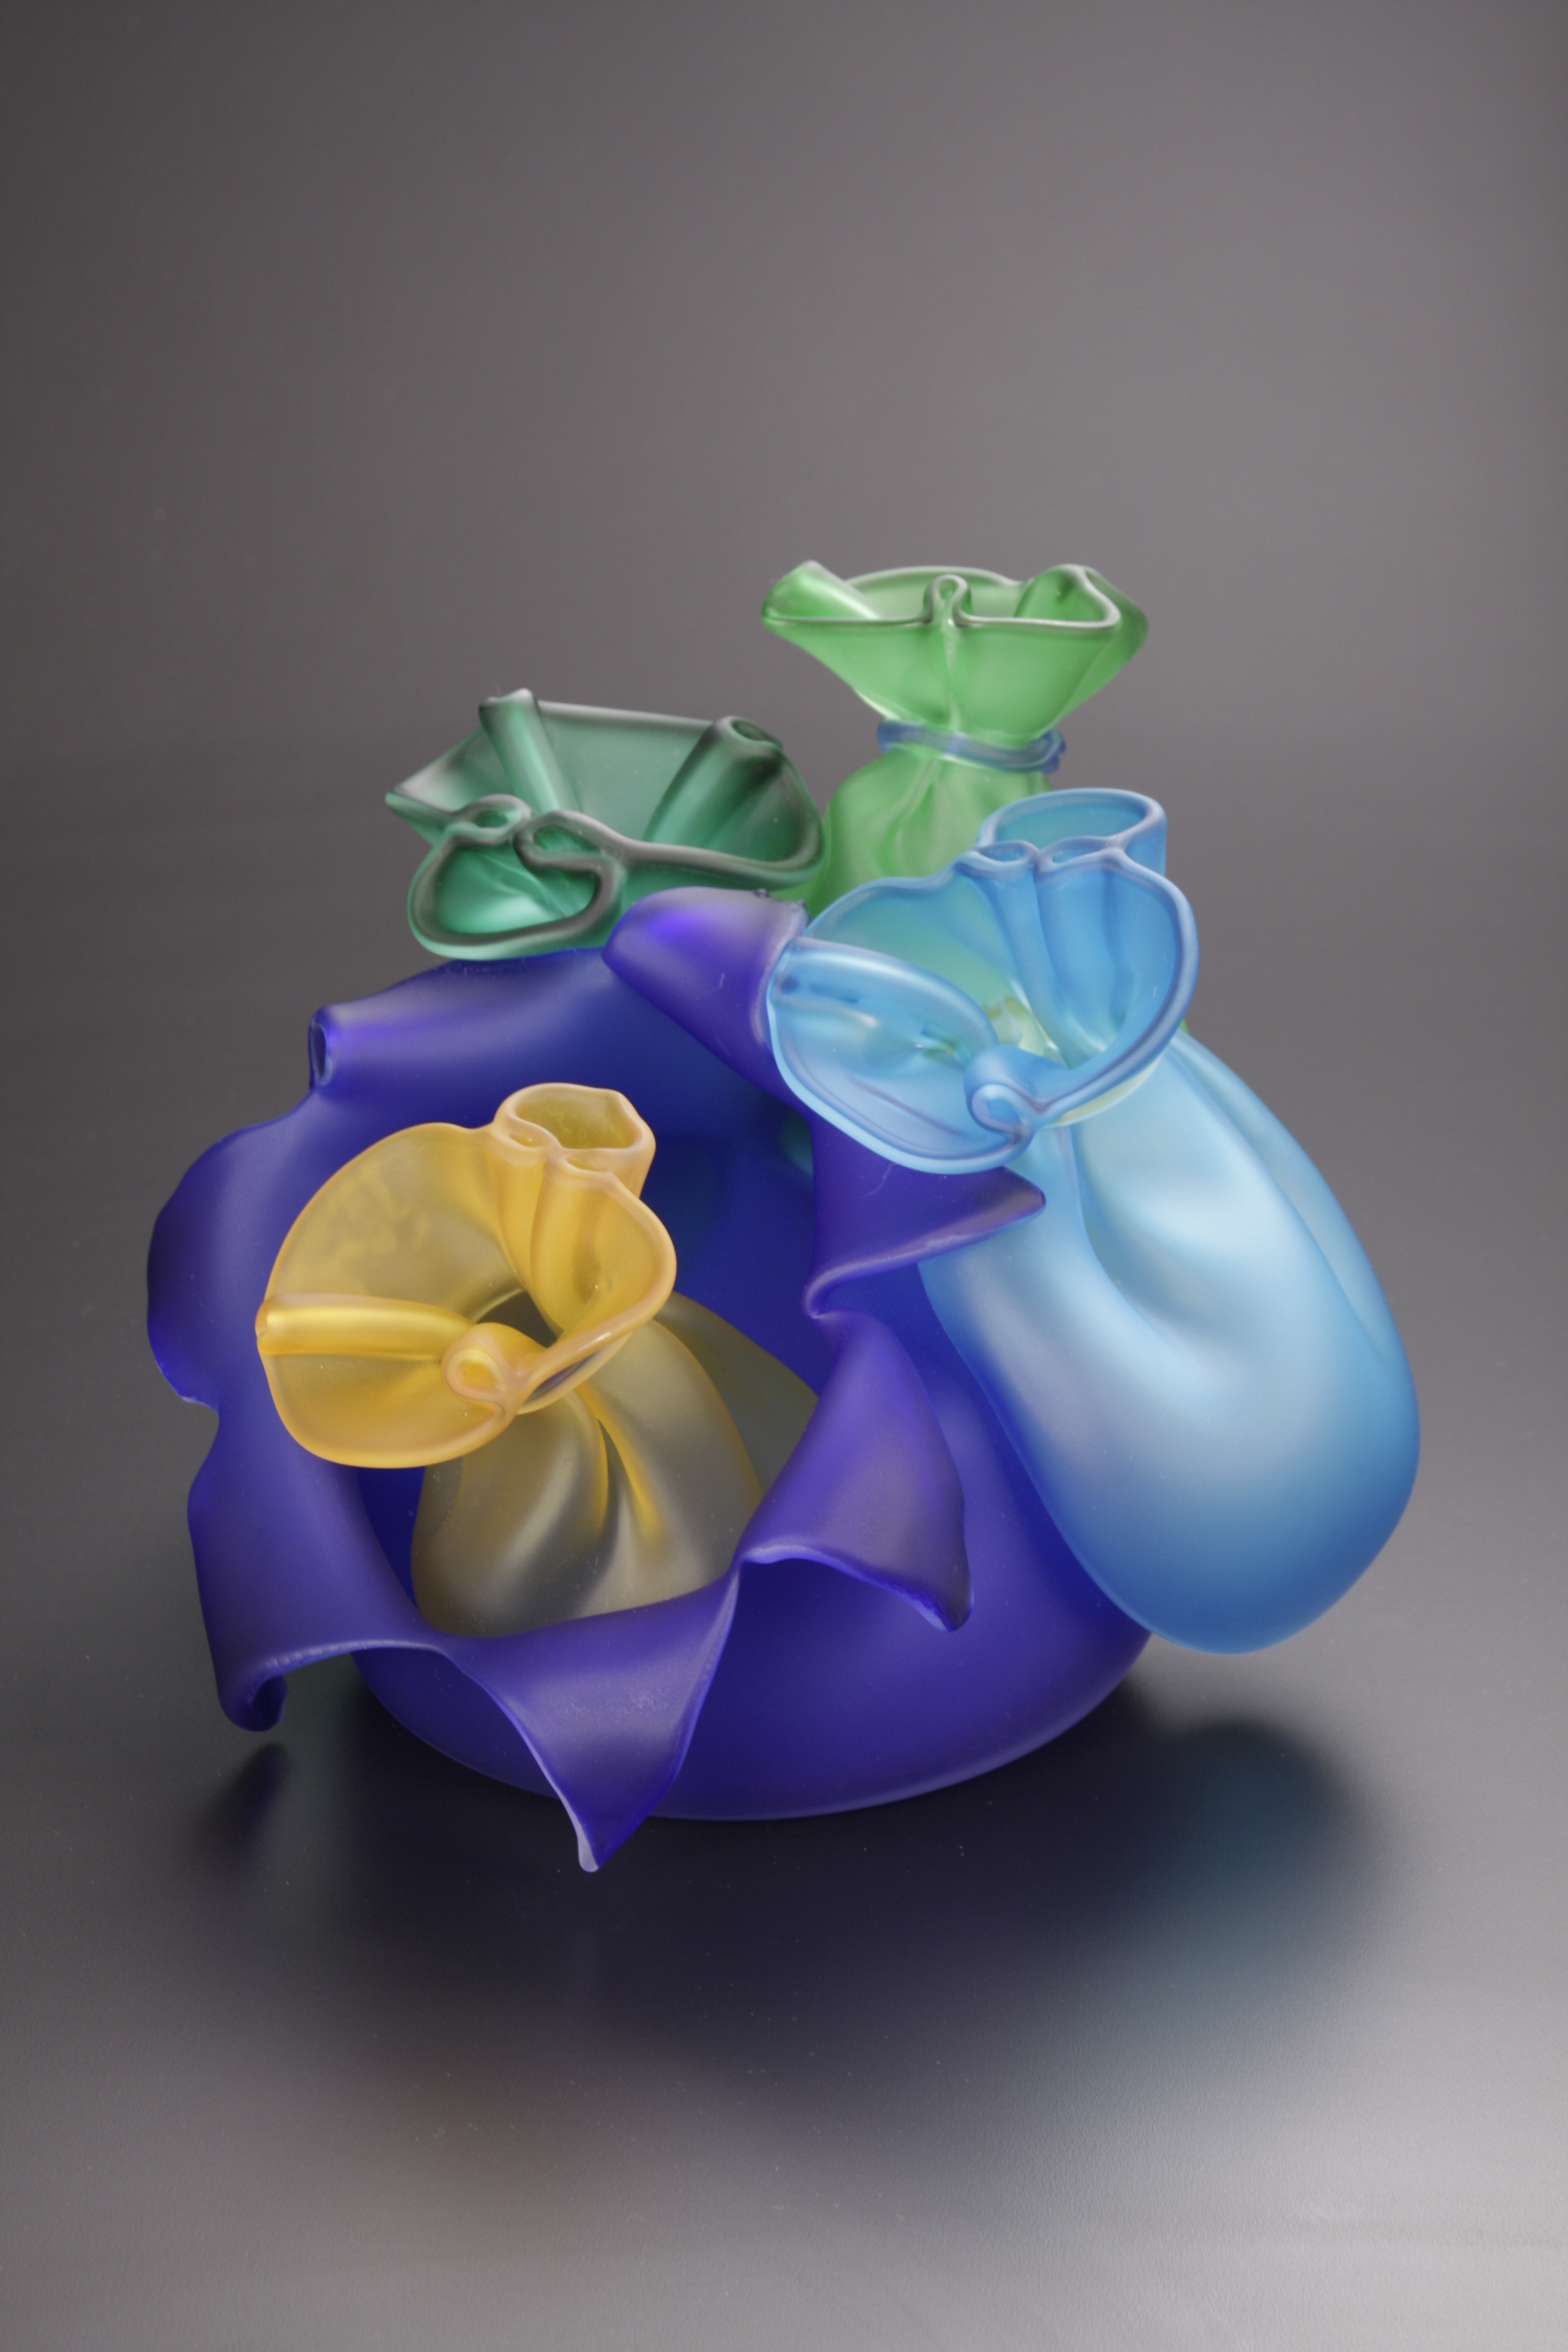 Glass sack with glass bags around it in blue, green, and amber.